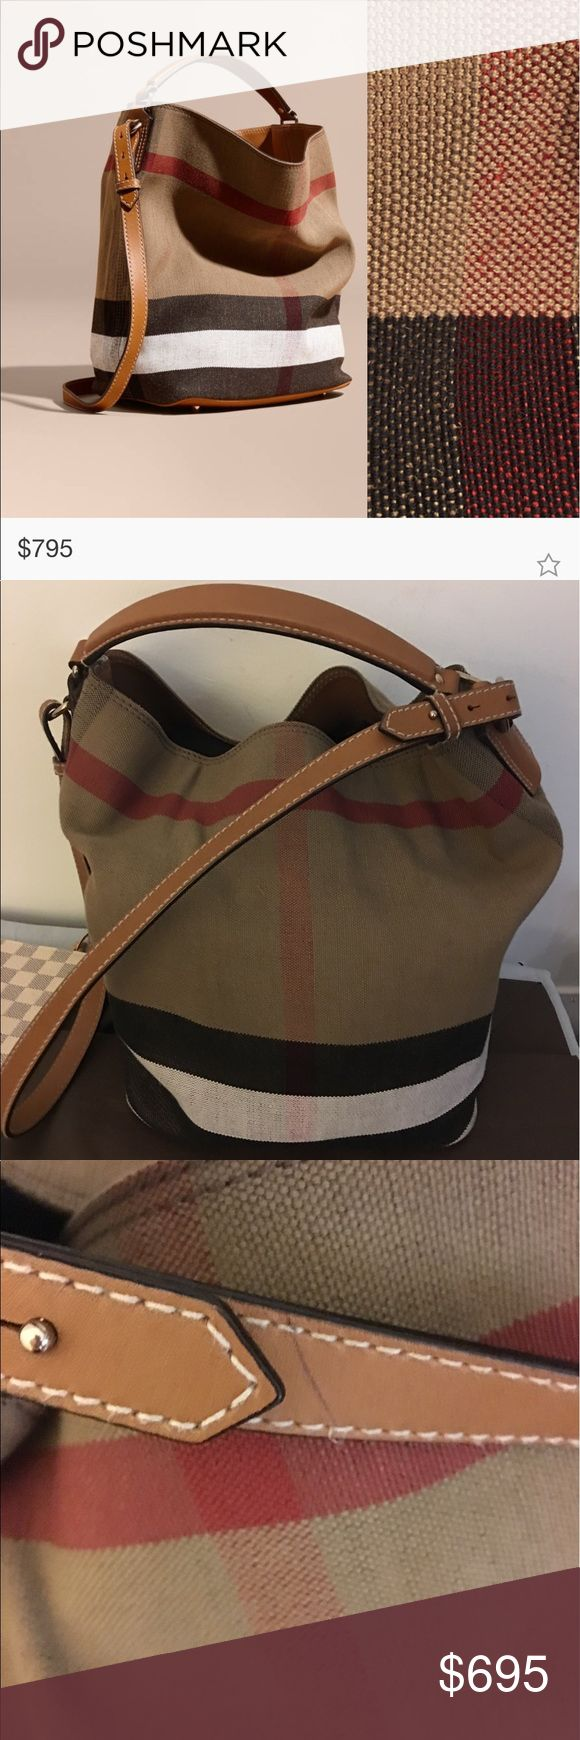 Burberry Ashby bag Burberry ashby bucket bag in like new condition with tan handles, the only flaw is a small pen mark on the long shoulder strap as shown in pics. Love this bag, so cute! 😊 still on Burberry website, take advantage of this great deal! ❤️ Burberry Bags